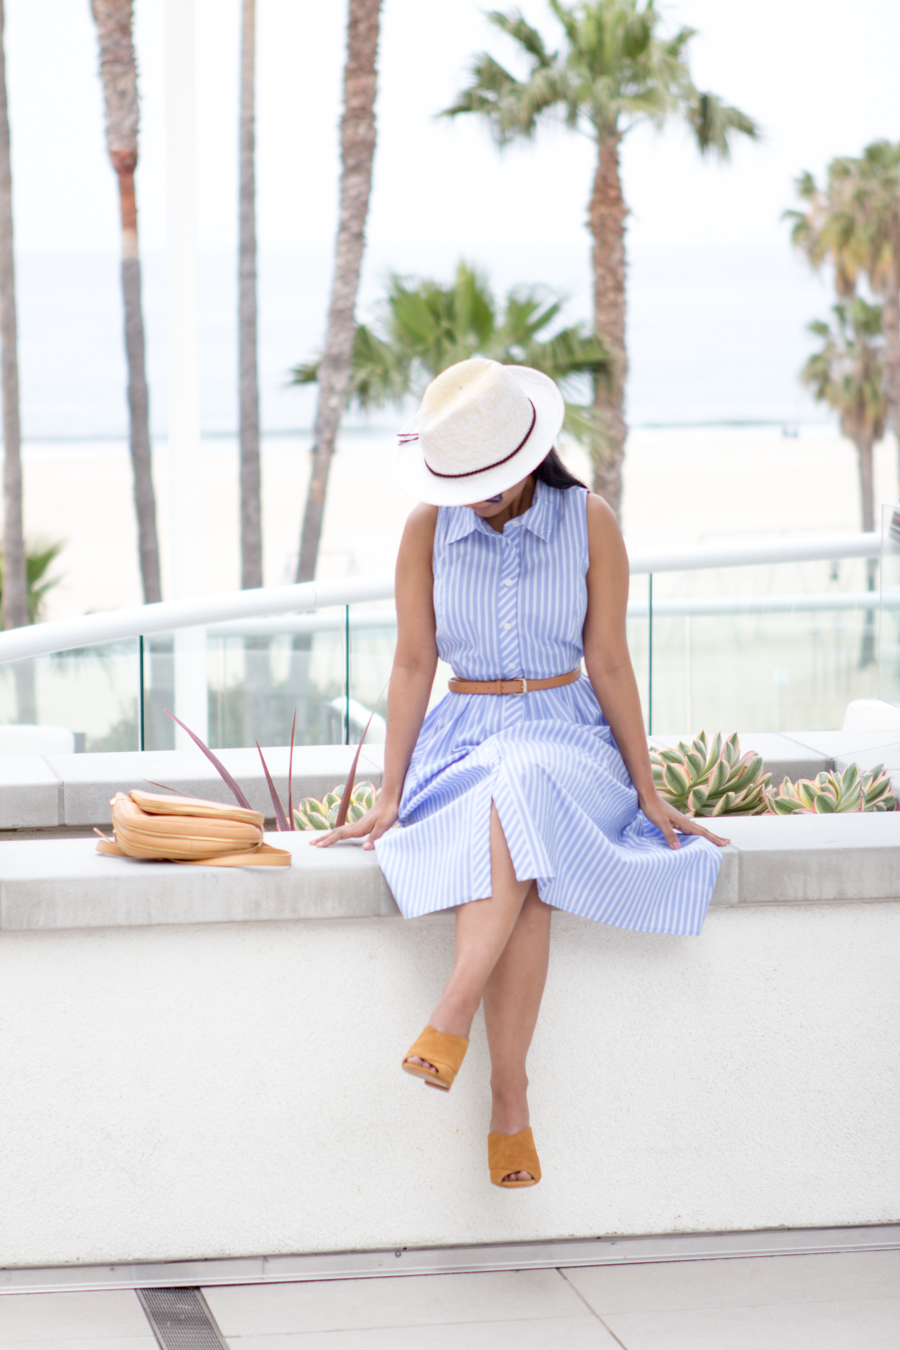 vacation wear, holiday dressing, poolside with cocktails, relaxed dressing, chic dress, belted dress, shirtdress, panama hat, express runway, pearl earrings, stella mccartney, square sunglasses, relaxing by the pool, mules, mustard slides, vince camuto, spring lookbook